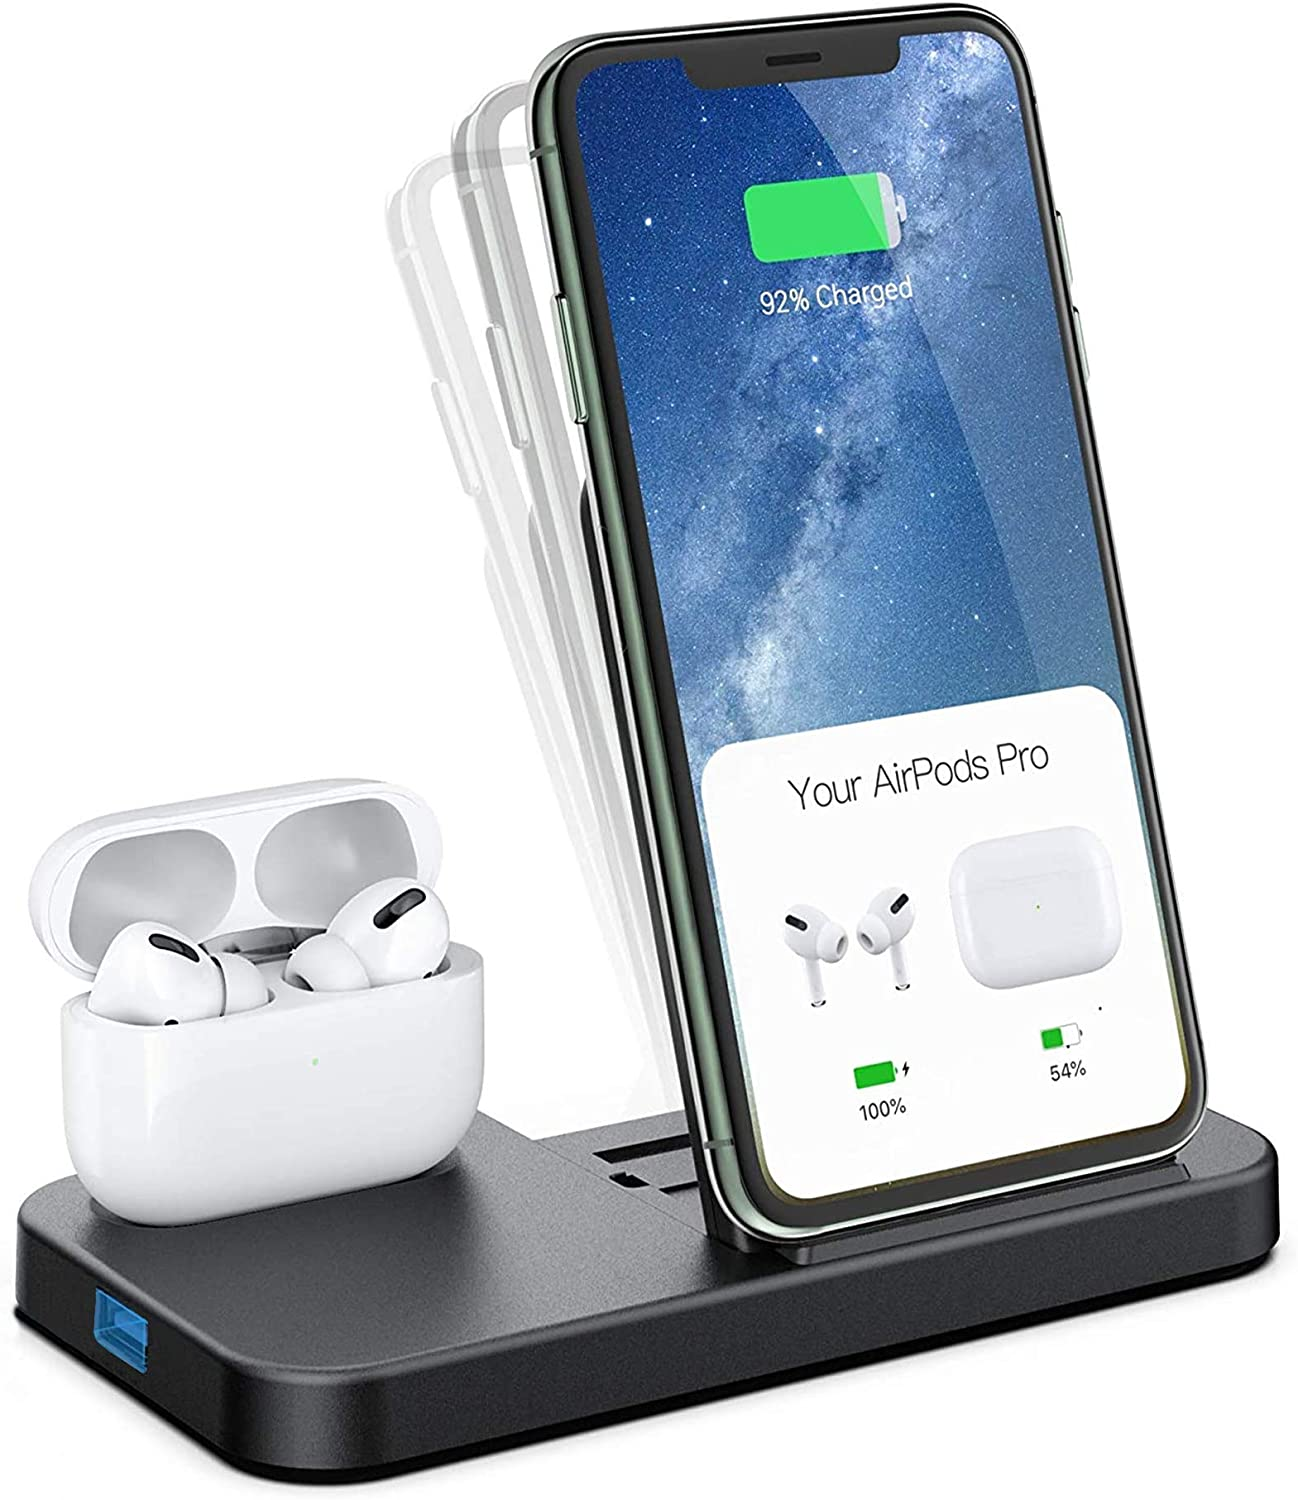 Conido Wireless Charger, 2 in 1 Wireless Charging Station for iPhone and AirPods, Charging Dock for AirPods Pro/2/1, 7.5W Qi Fast Charger for iPhone SE 2020/12 Pro Max/11 Pro Max/XR/XS Max/X/8 Plus